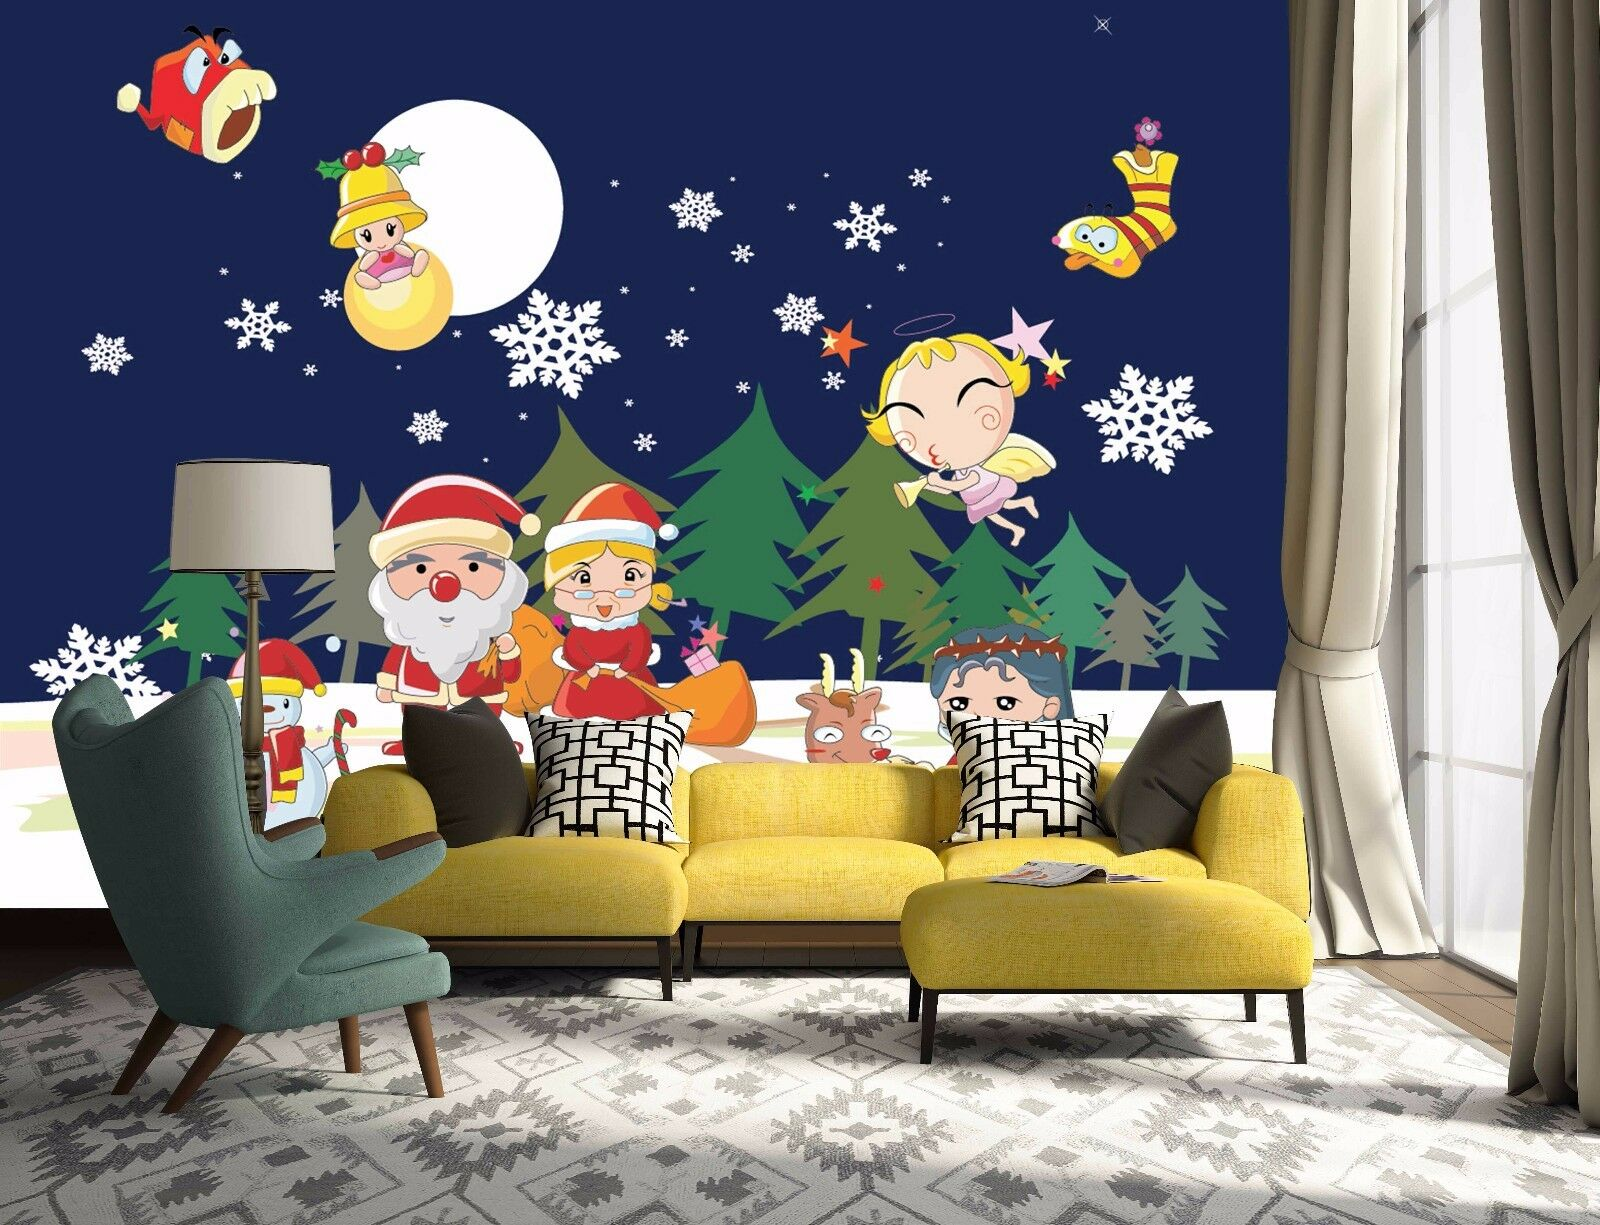 3D Angel Santa Claus 644 Wallpaper Murals Wall Print Wallpaper Mural AJ WALL US